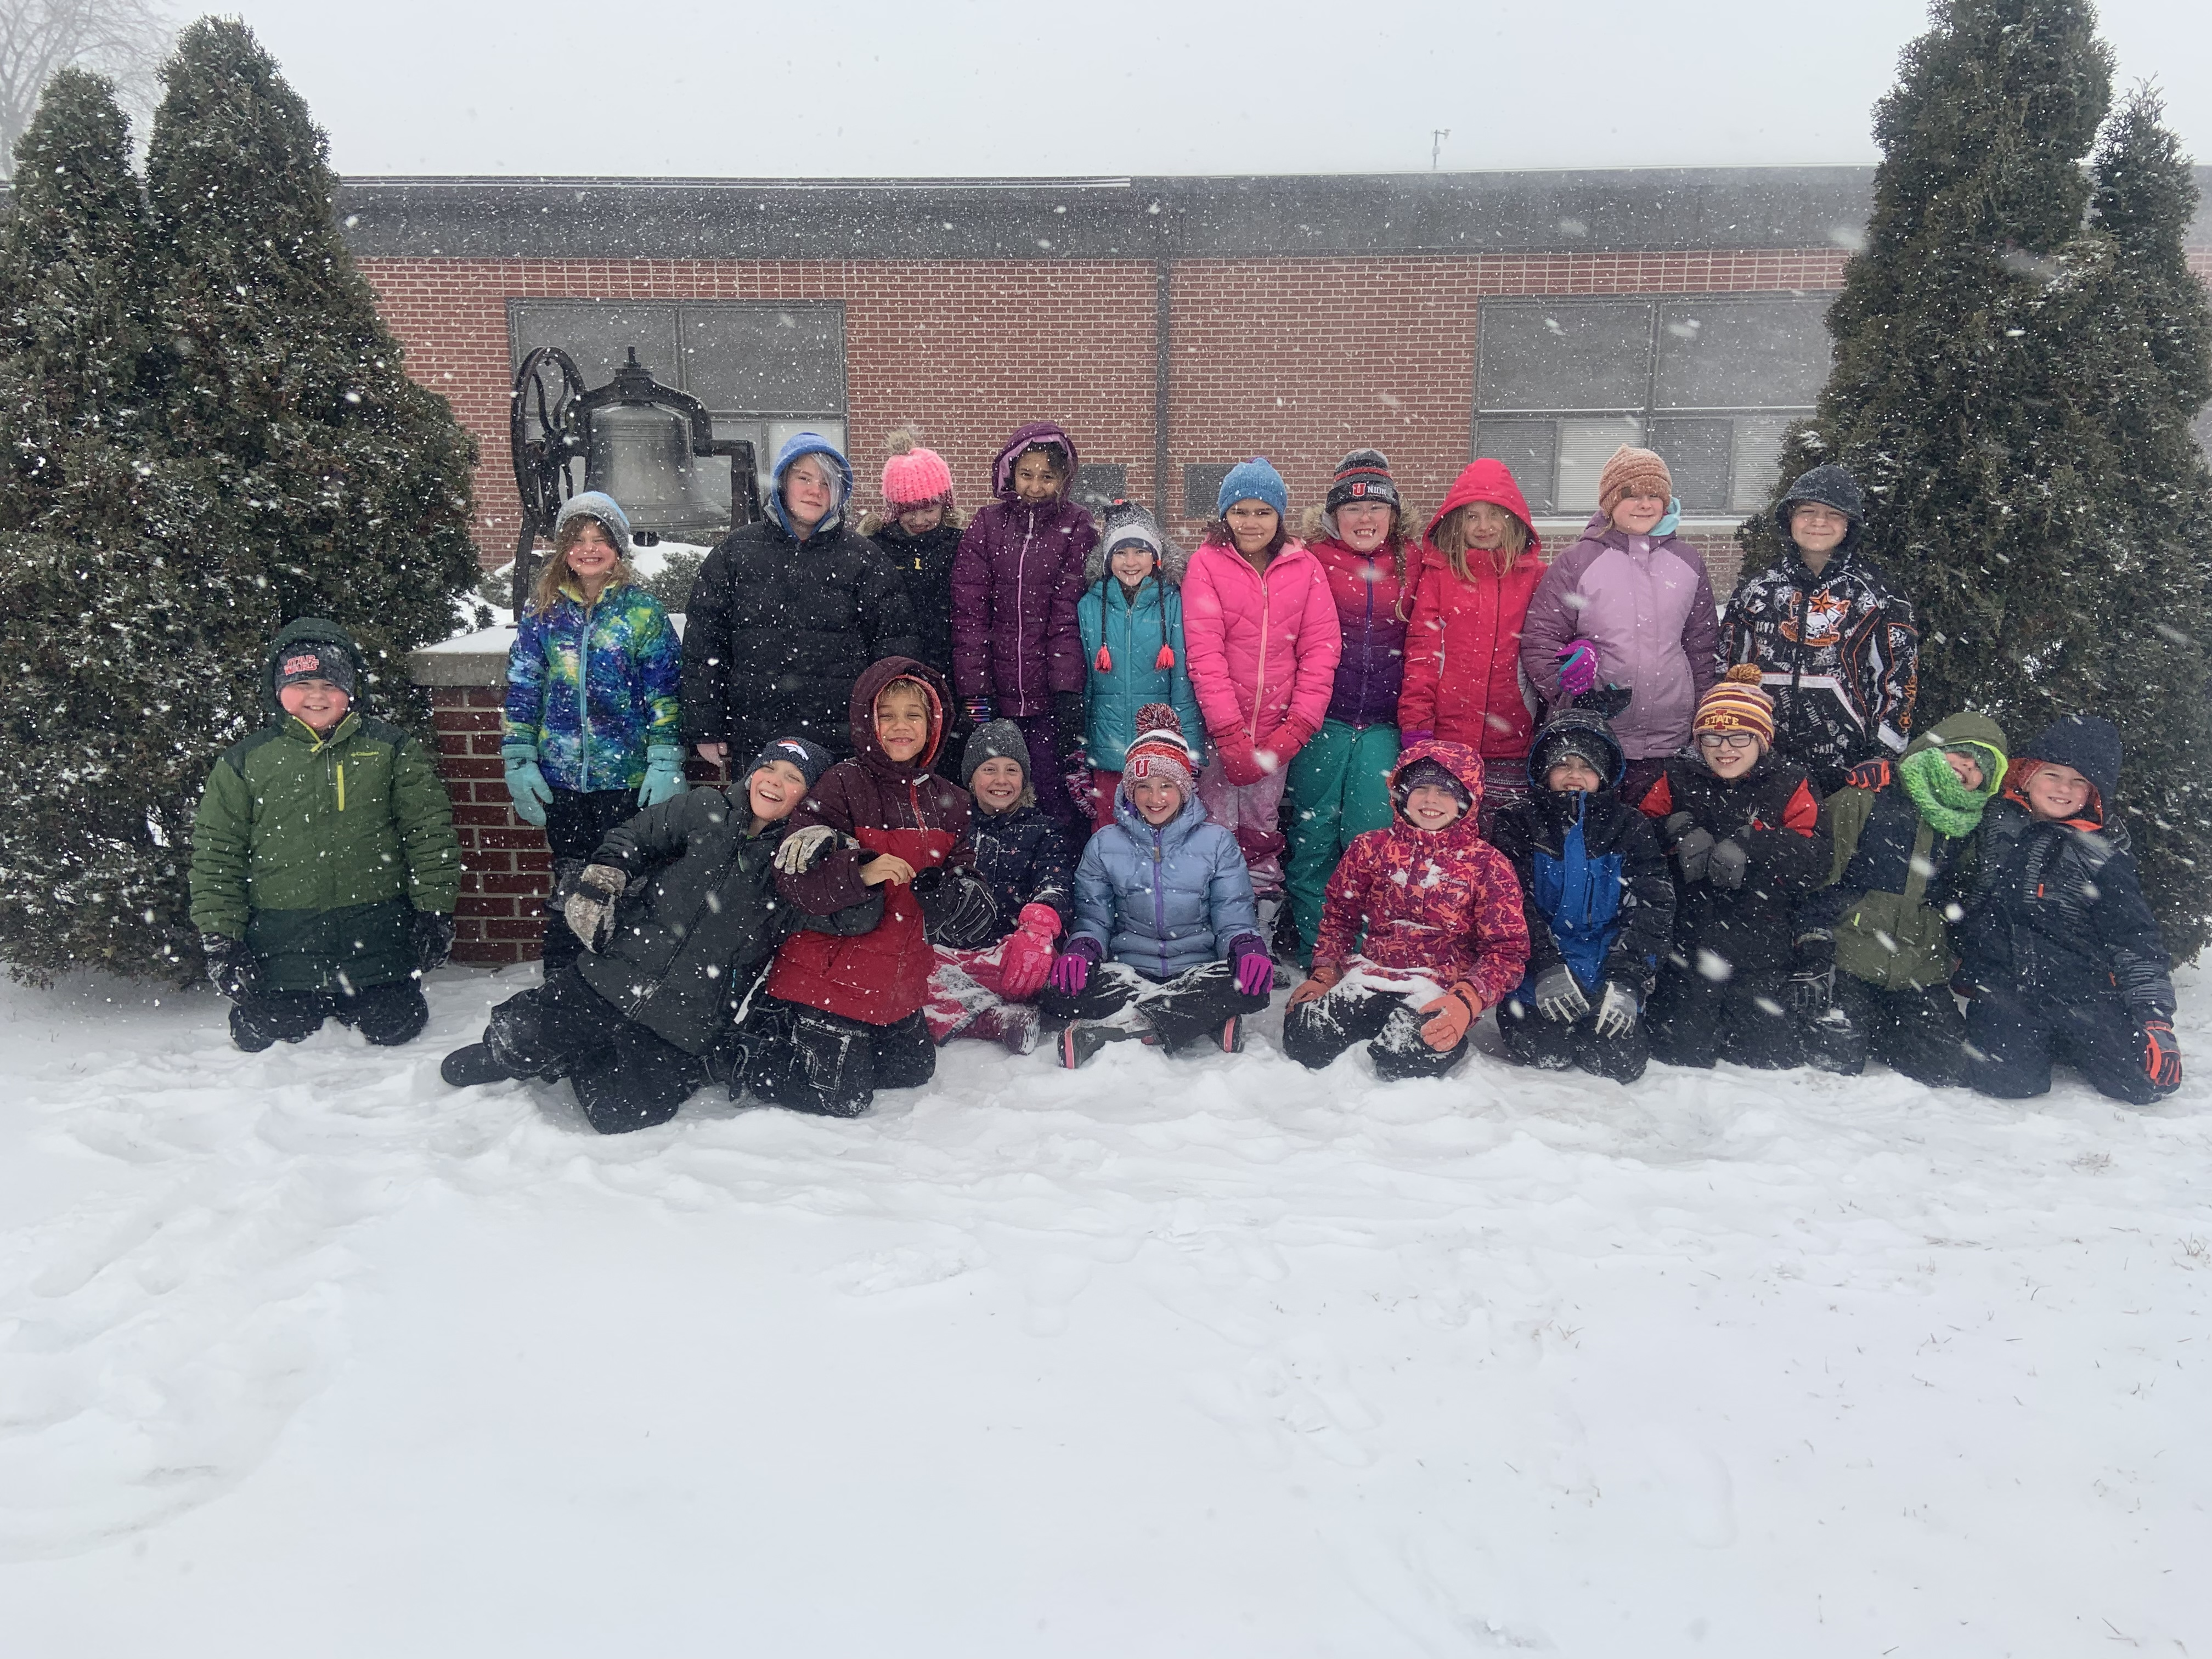 Elementary students in snow